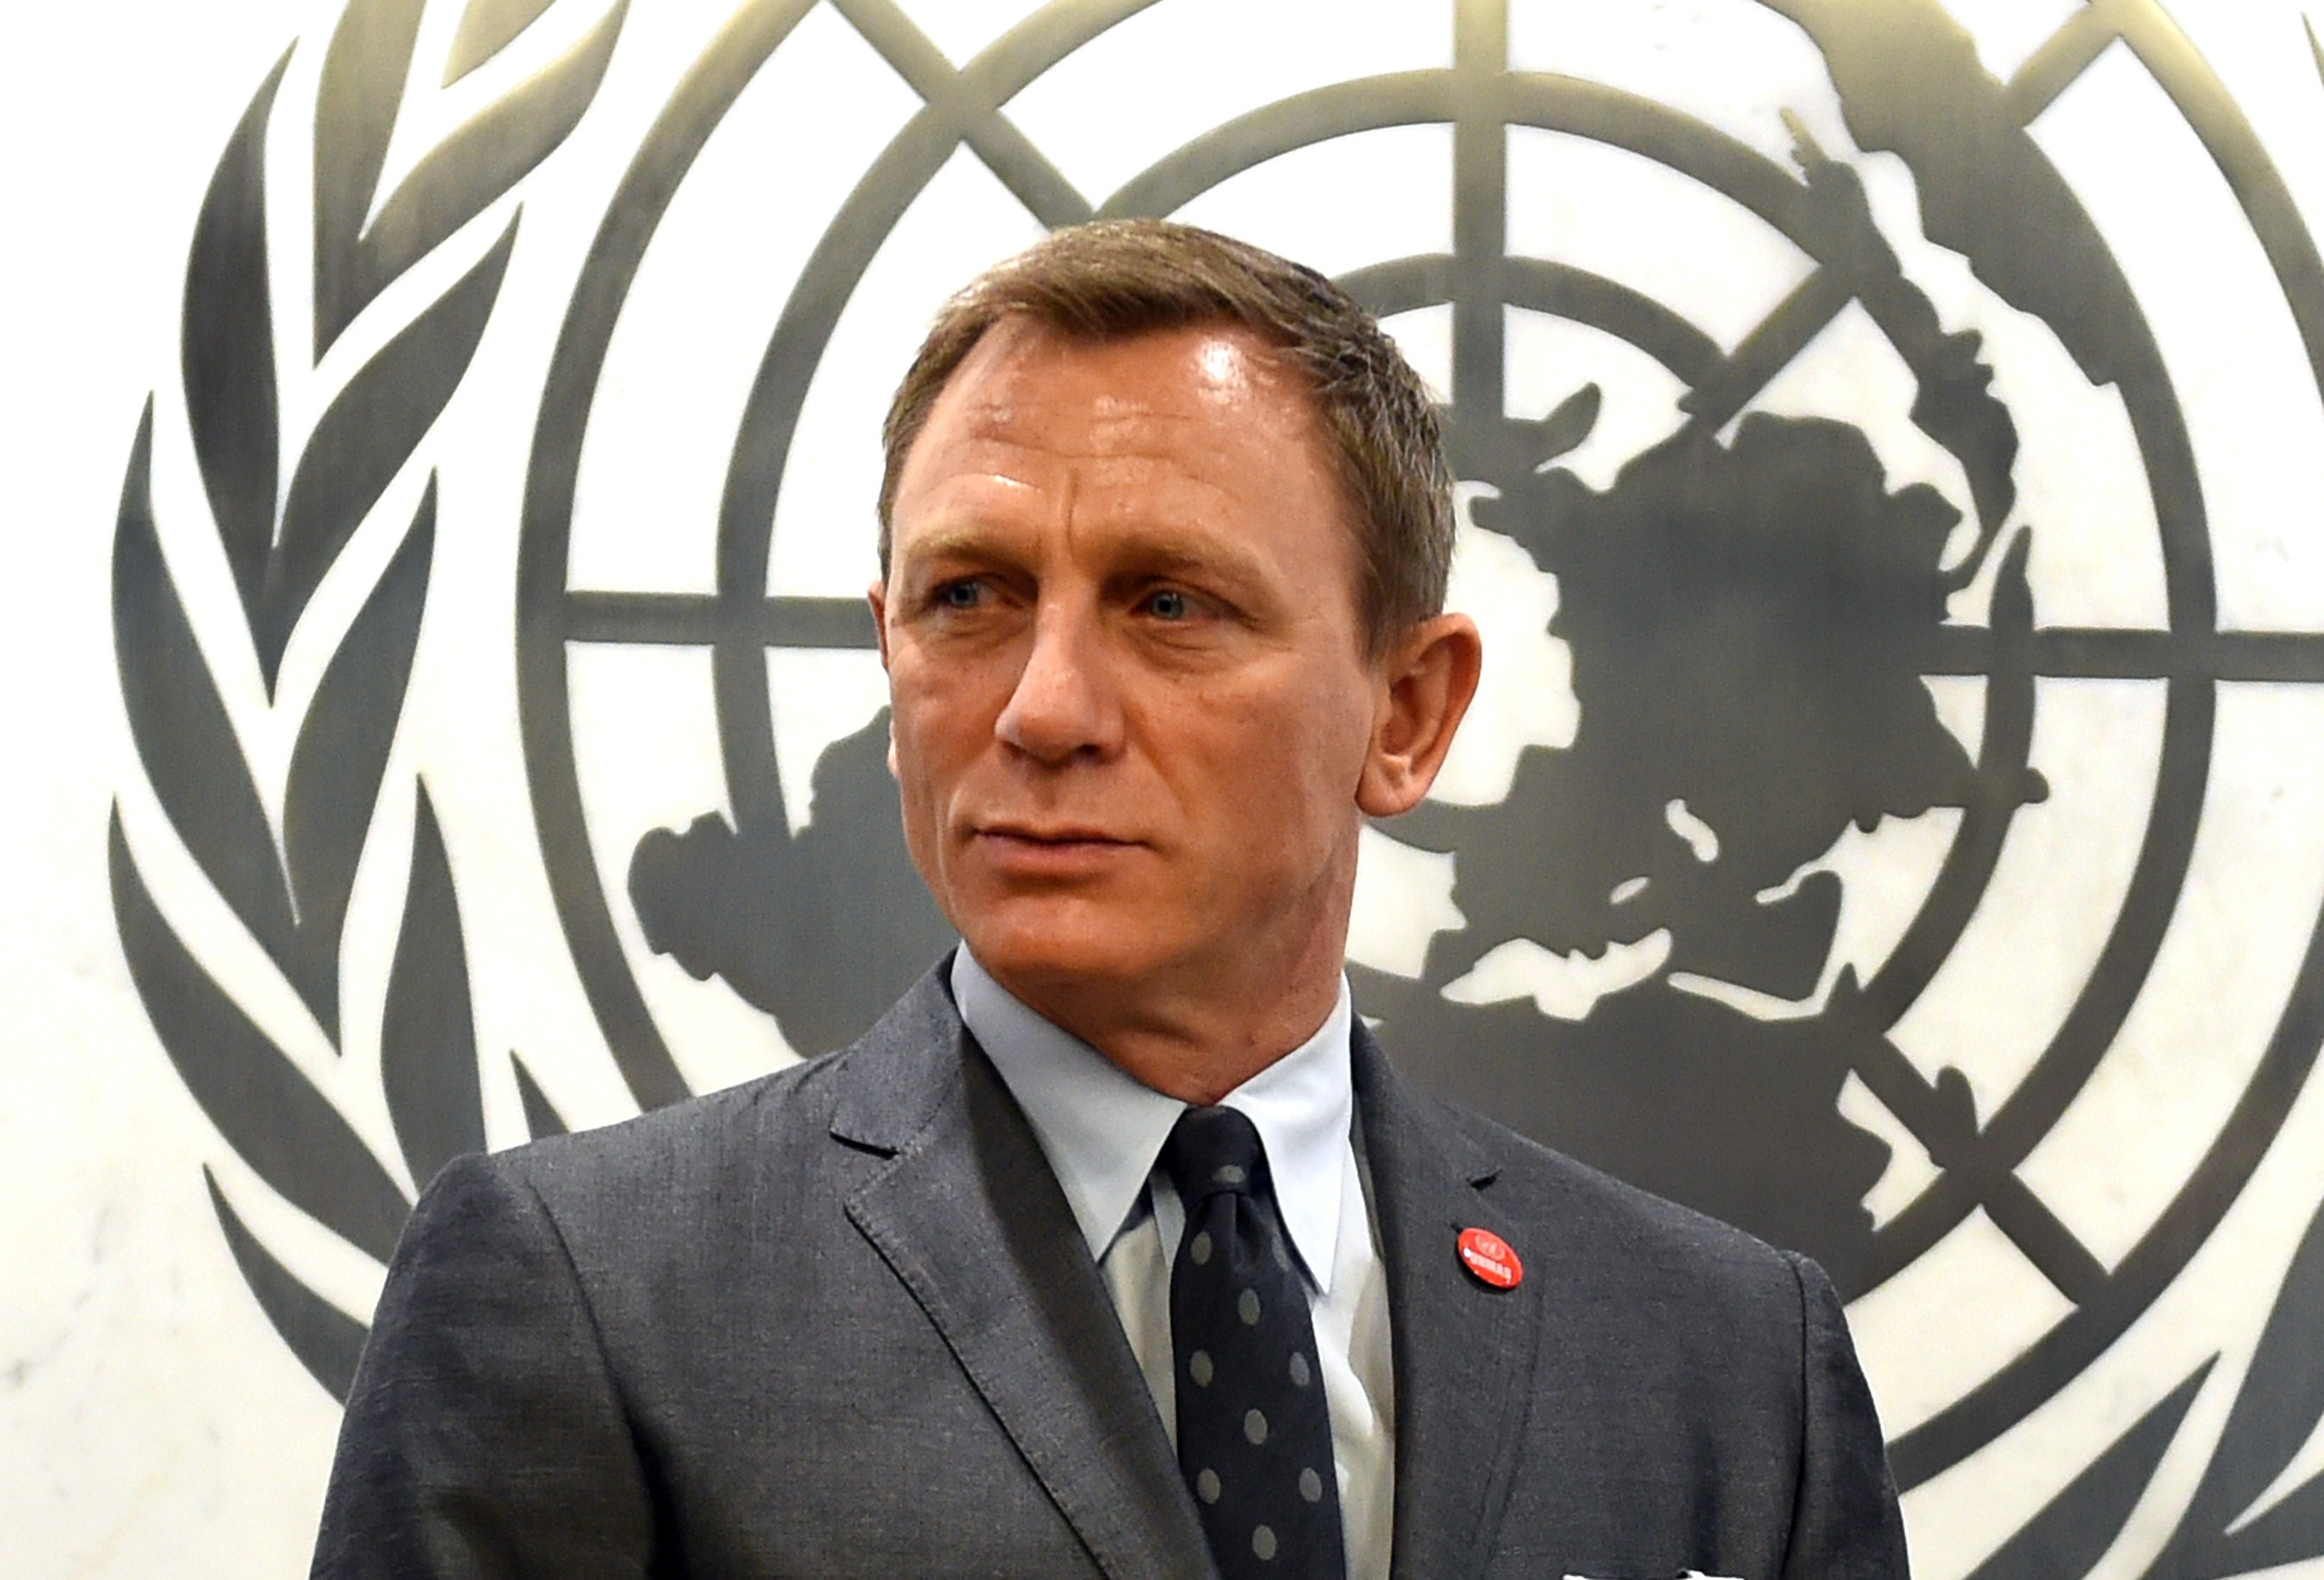 Actor Daniel Craig was named the UN Global Advocate for the Elimination of Mines and Explosive Hazards at the United Nations in New York City on April 14, 2015.